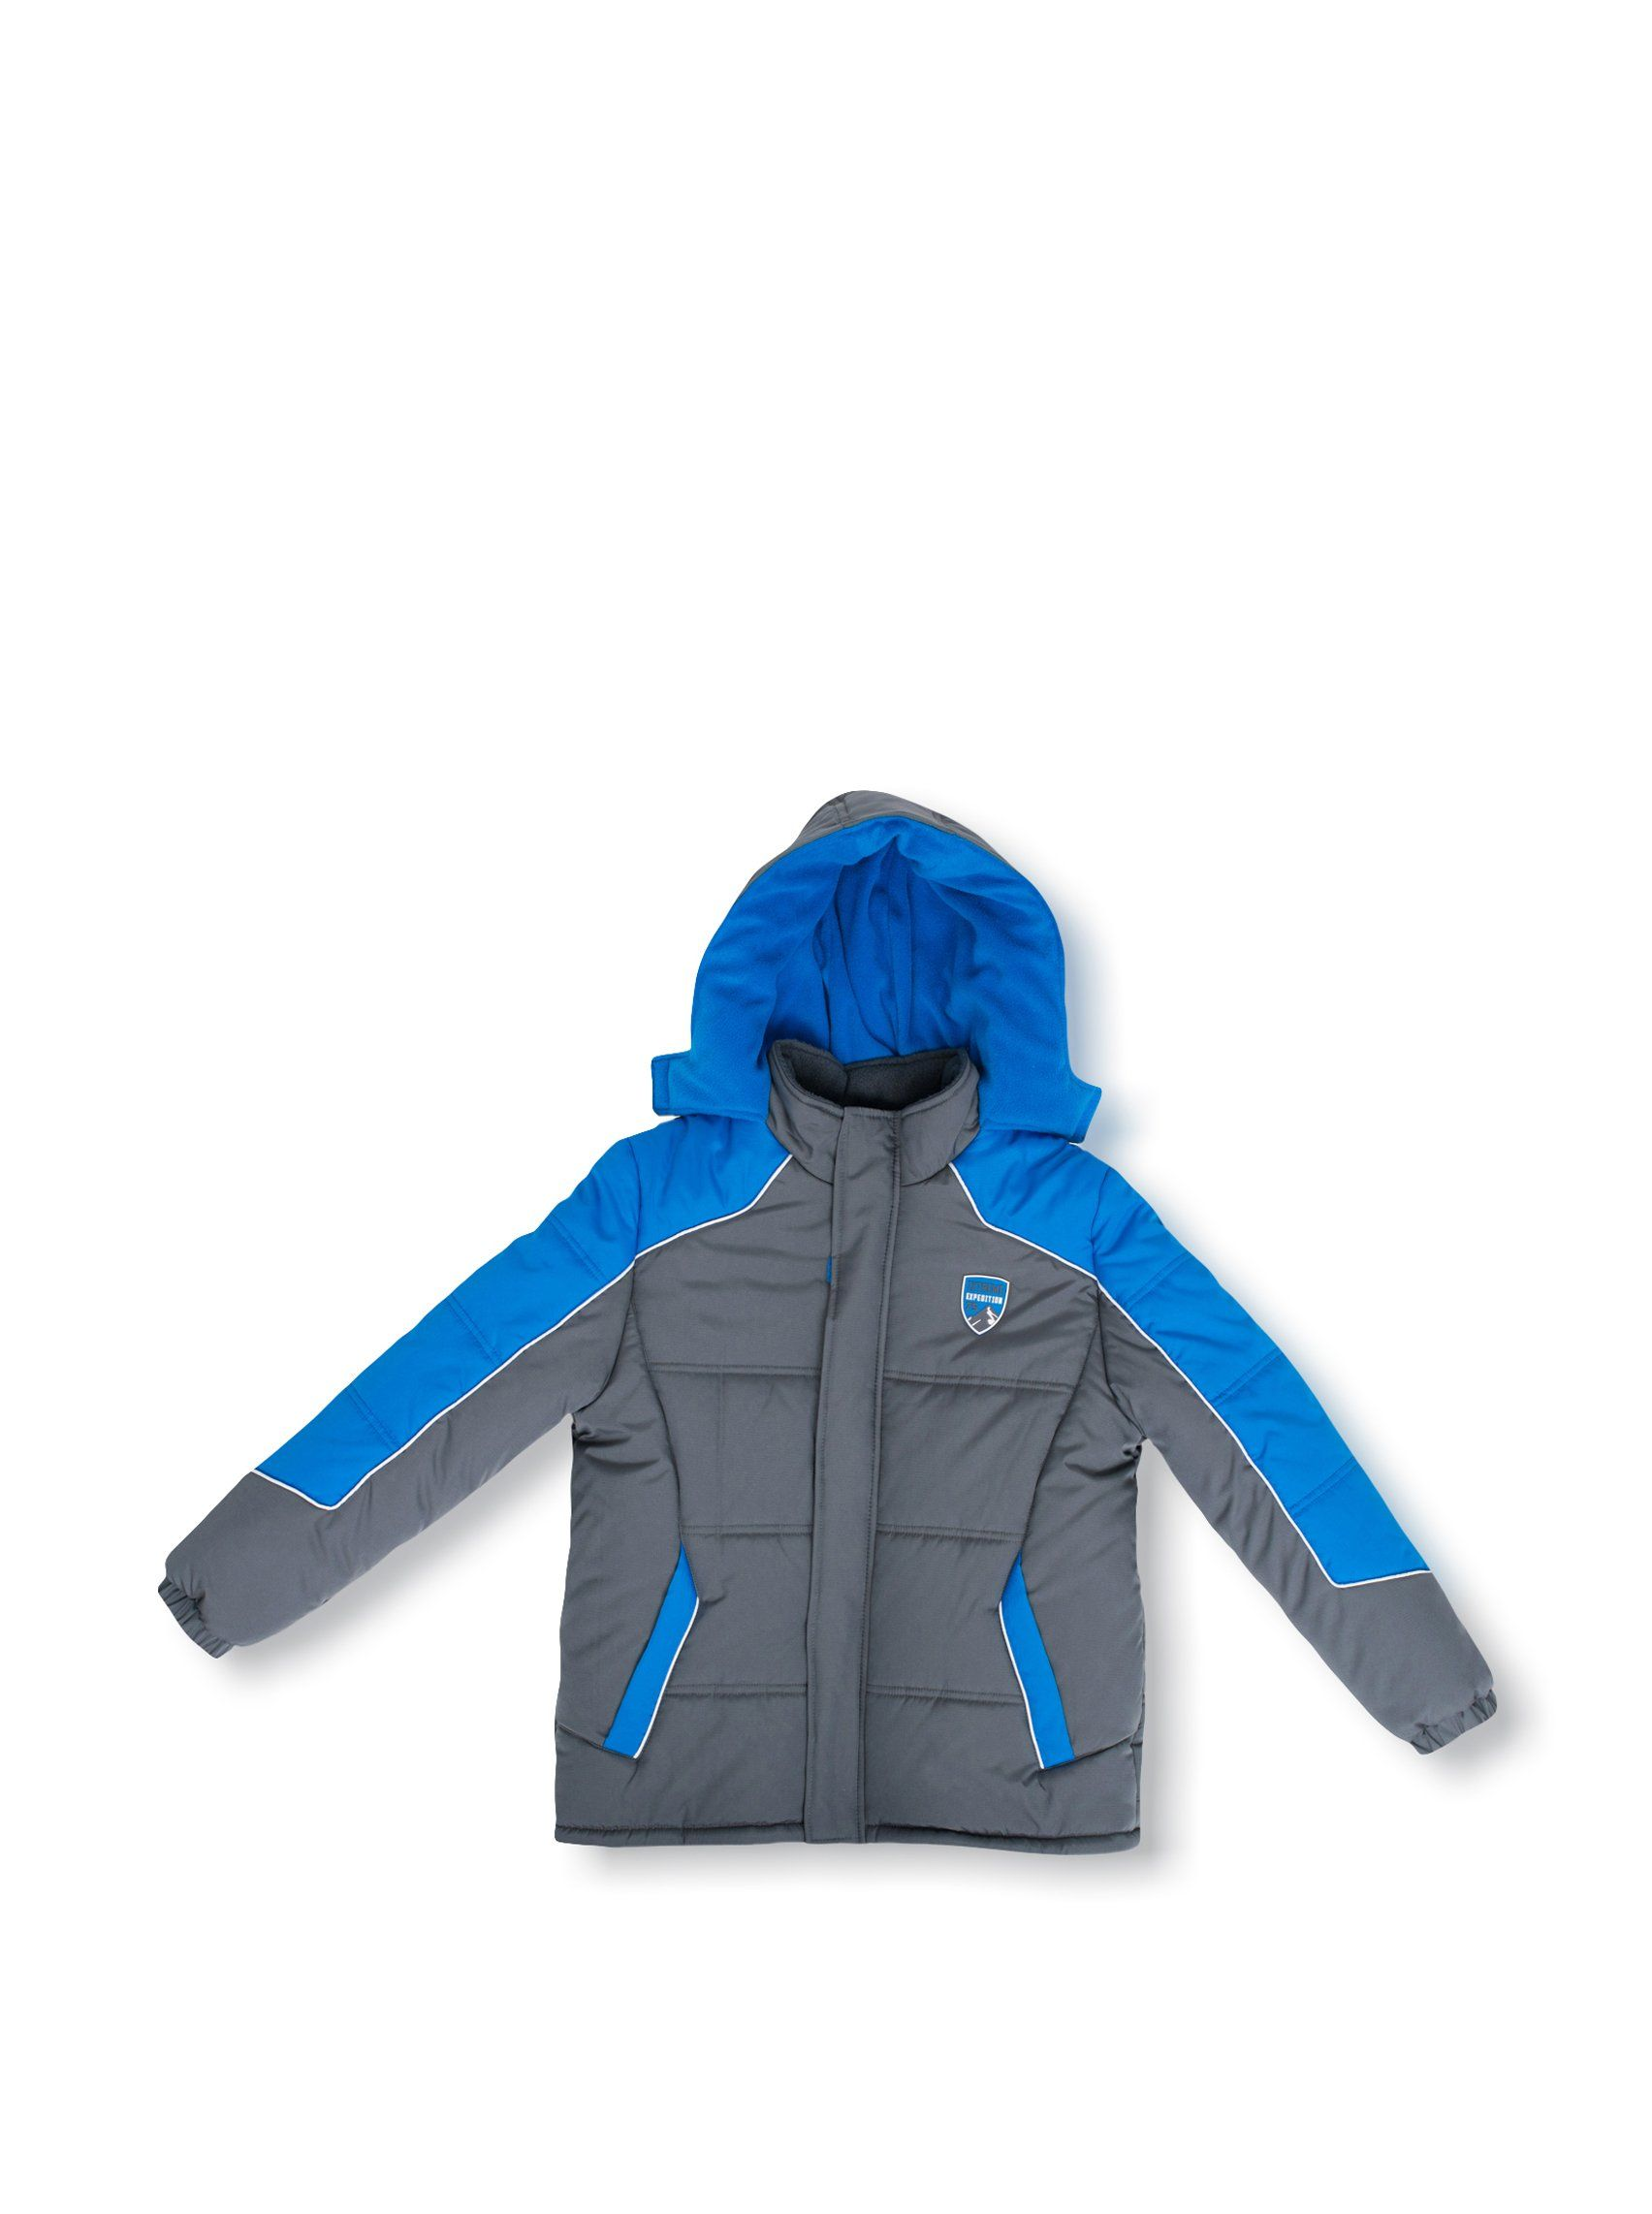 Ixtreme Big Boys Color Block Active Puffer Jacket 5 Charcoal Zip Front Closure With Velcro Placket Water Resistant Outer Shell Jackets Warm Winter Boys [ 2284 x 1704 Pixel ]